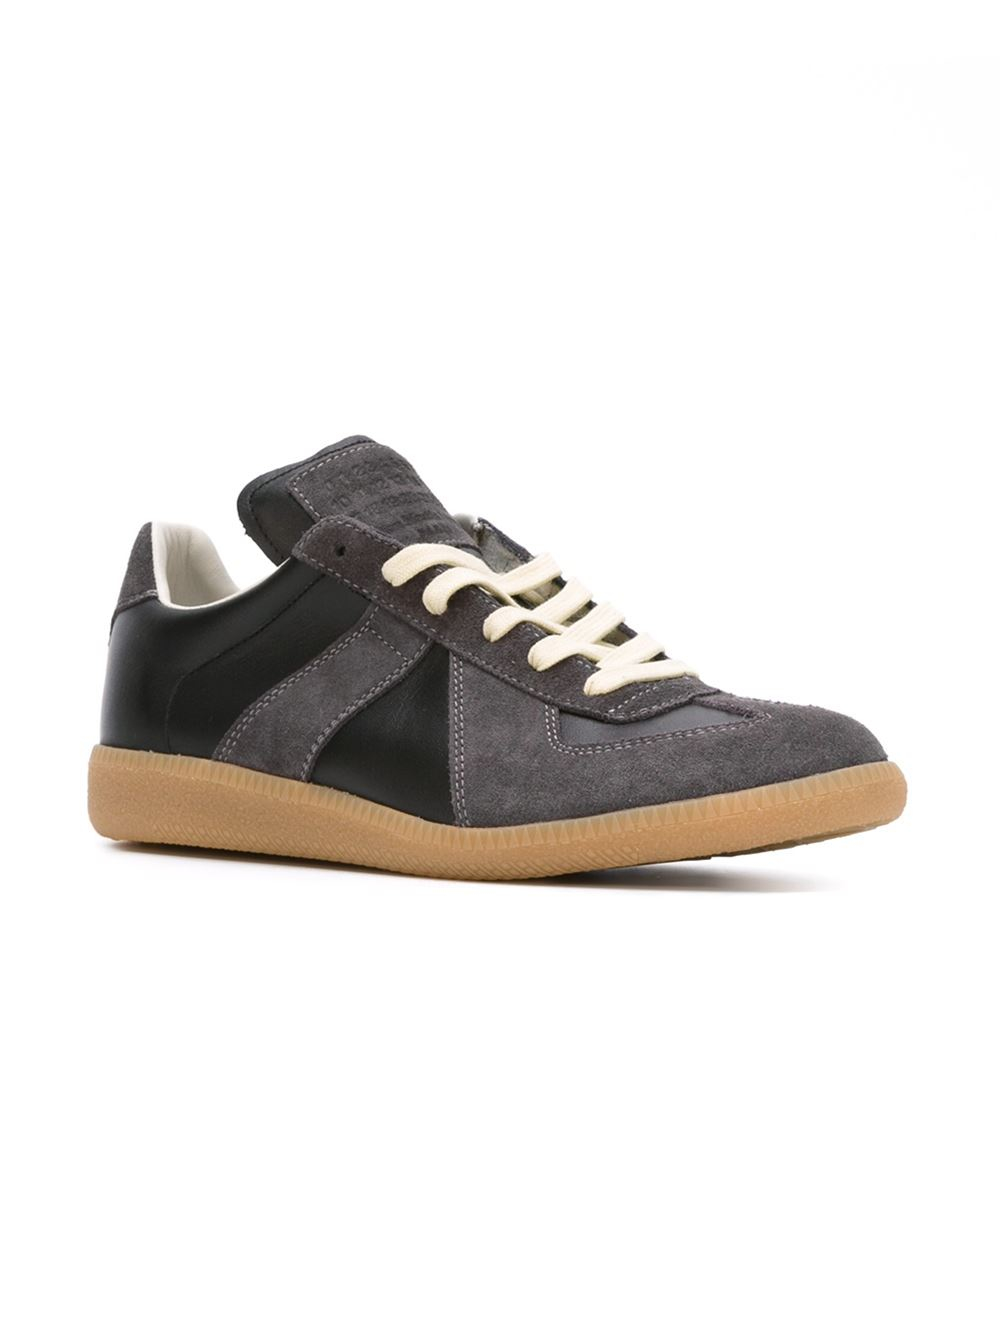 maison margiela geometric paneled sneakers in gray black lyst. Black Bedroom Furniture Sets. Home Design Ideas